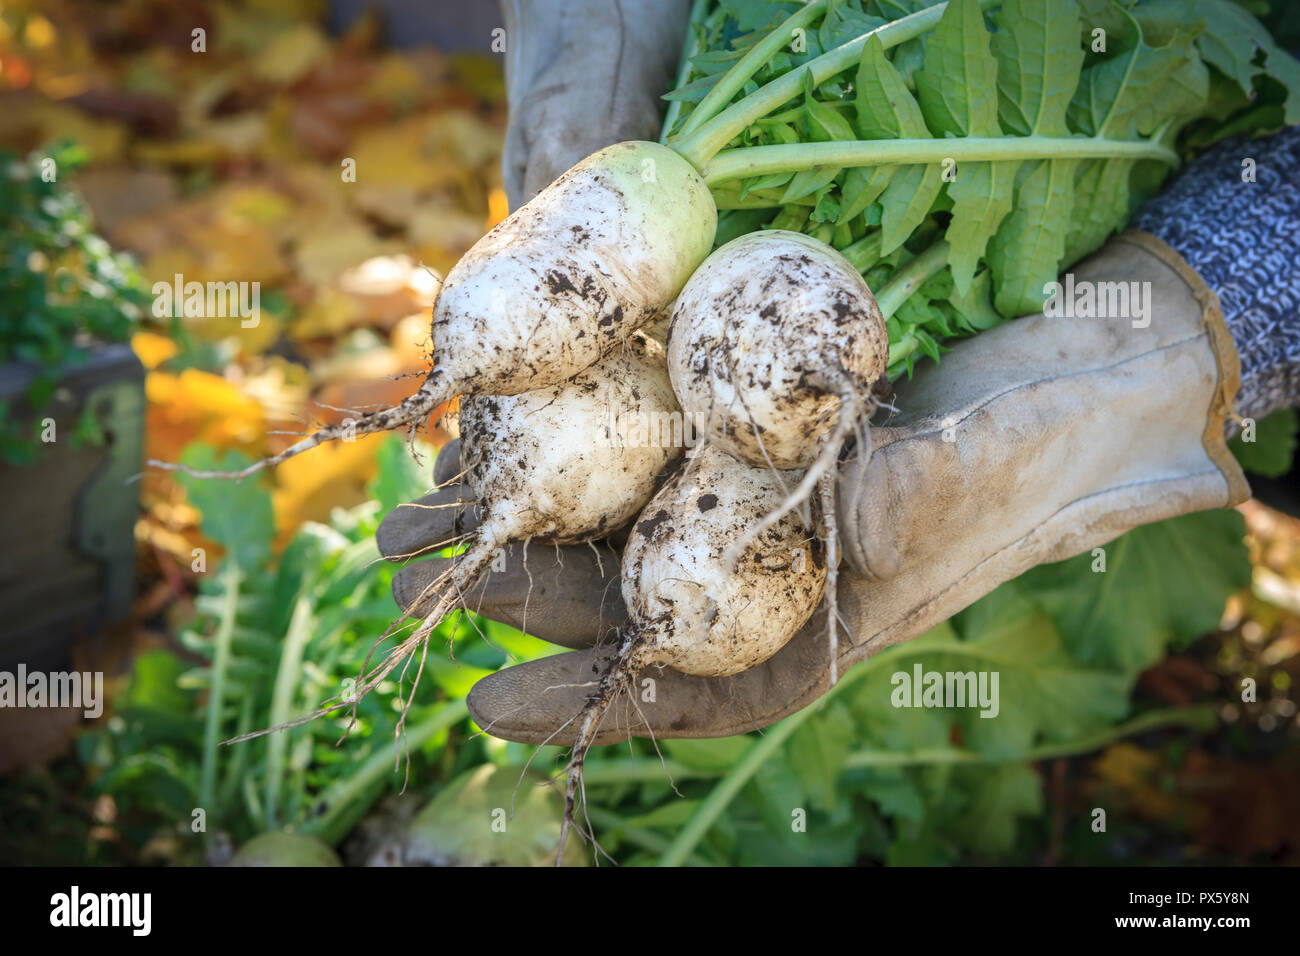 Gloved hands are holding chinese radishes that were just harvested. - Stock Image